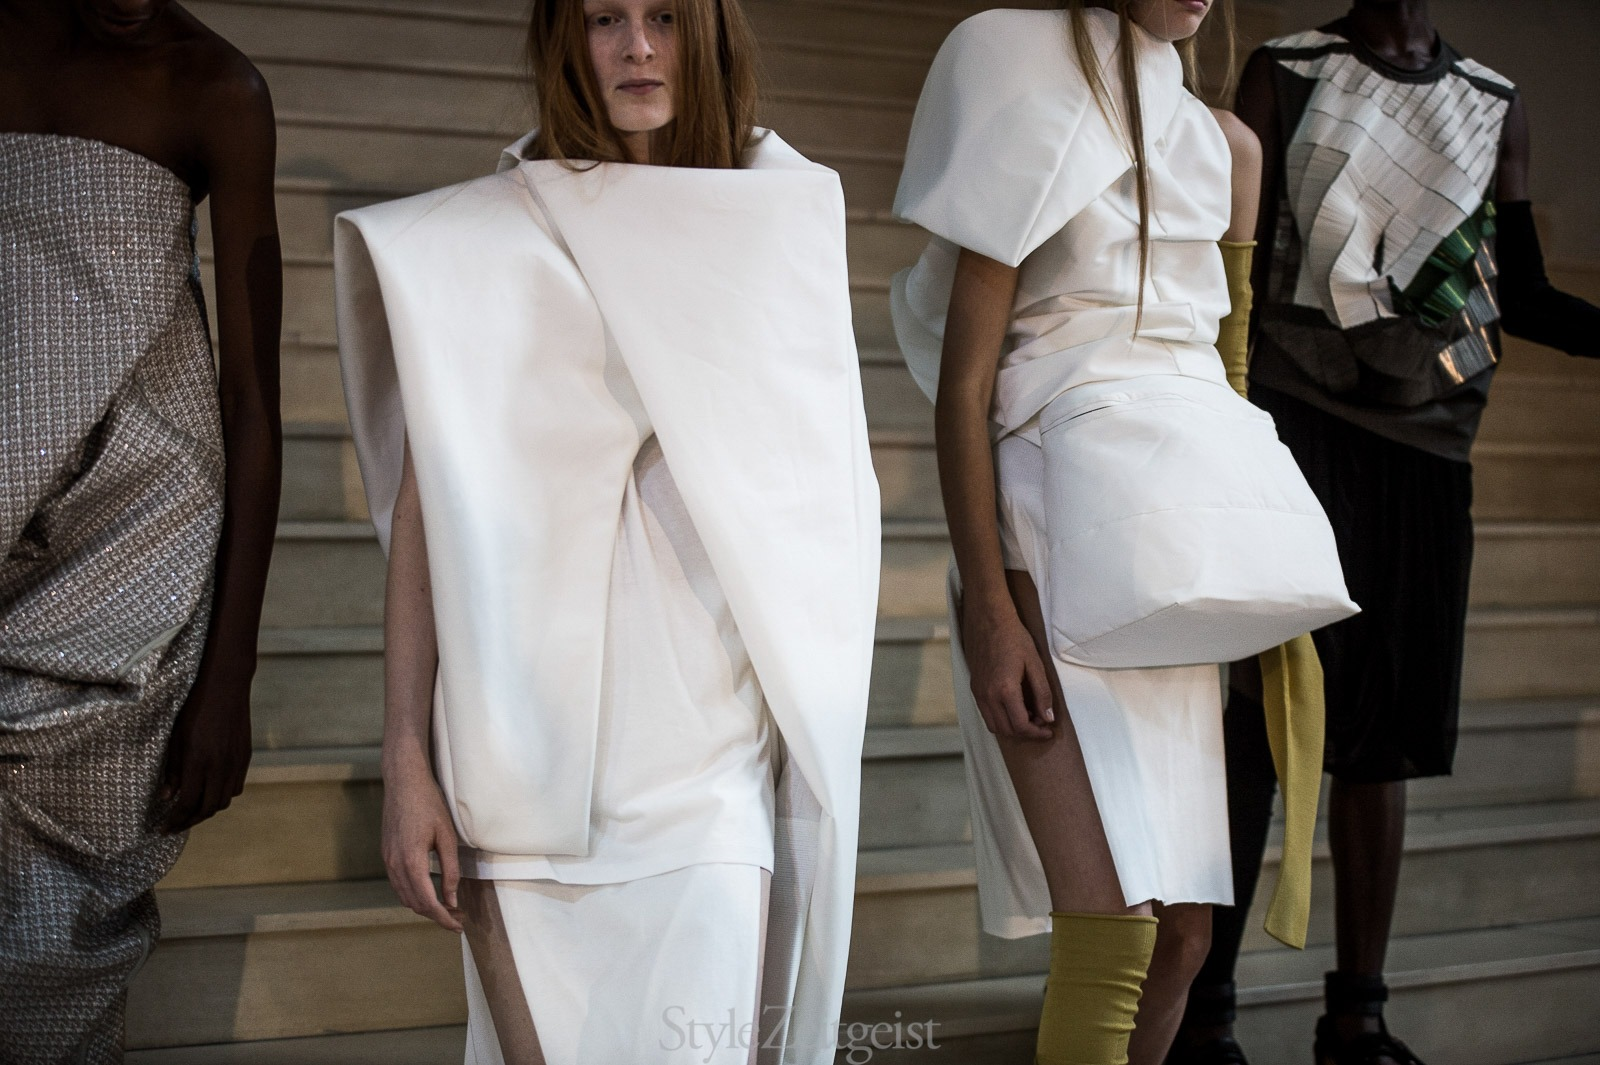 Rick Owens S/S18 Women's – Paris Backstage - fashion - Womenswear, StyleZeitgeist, SS18, Spring Summer, Rick Owens, PFW, Paris, Julien Boudet, Fashion, Backstage, 2017